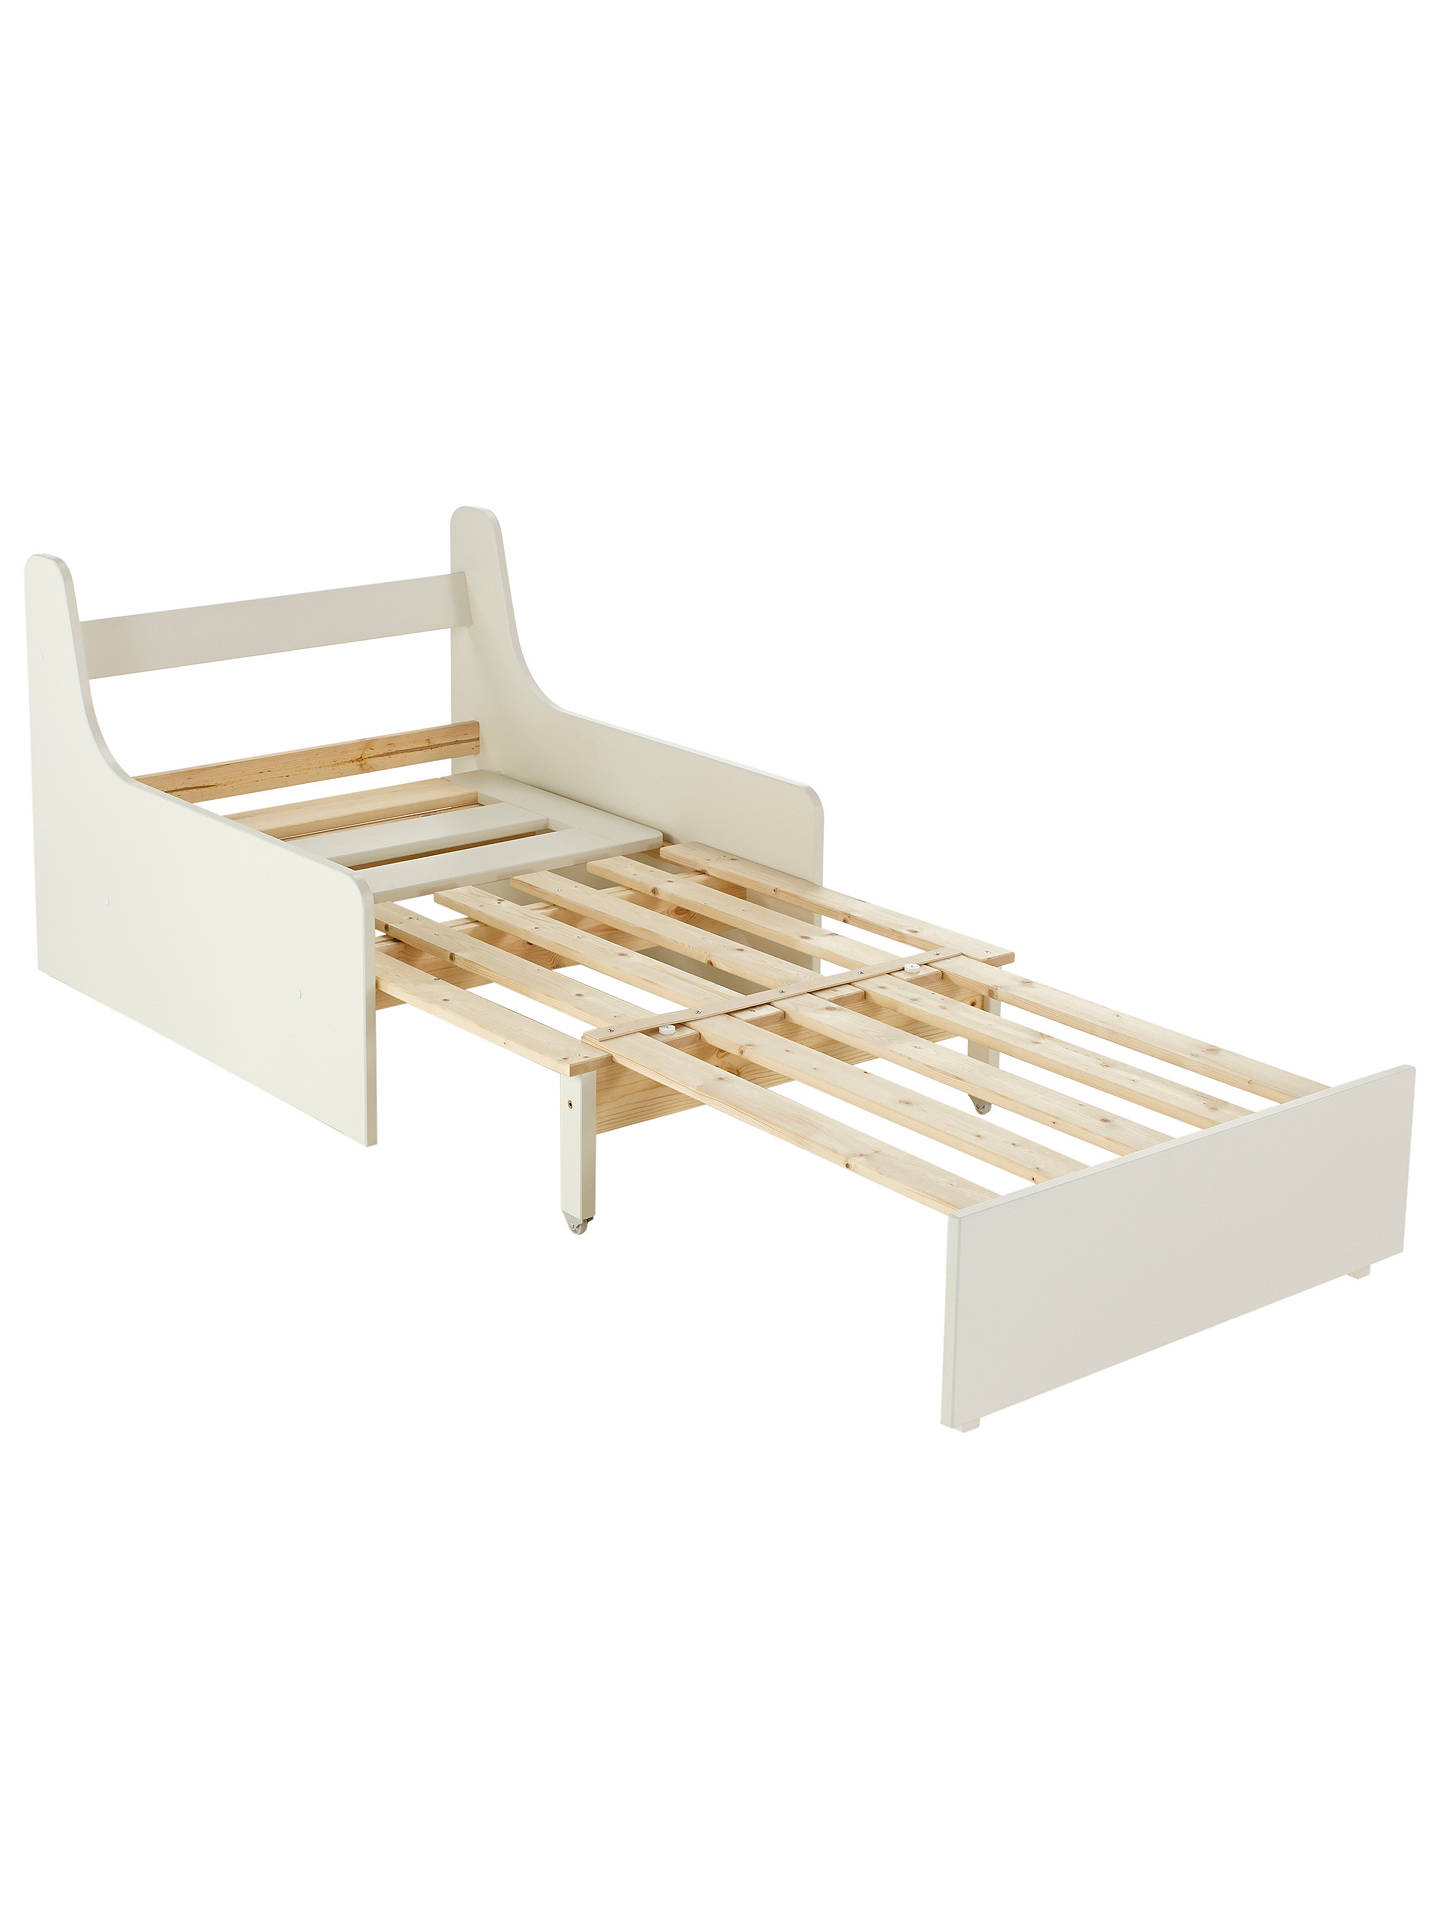 Stompa Uno S Plus Single Chair Bed At John Lewis Amp Partners